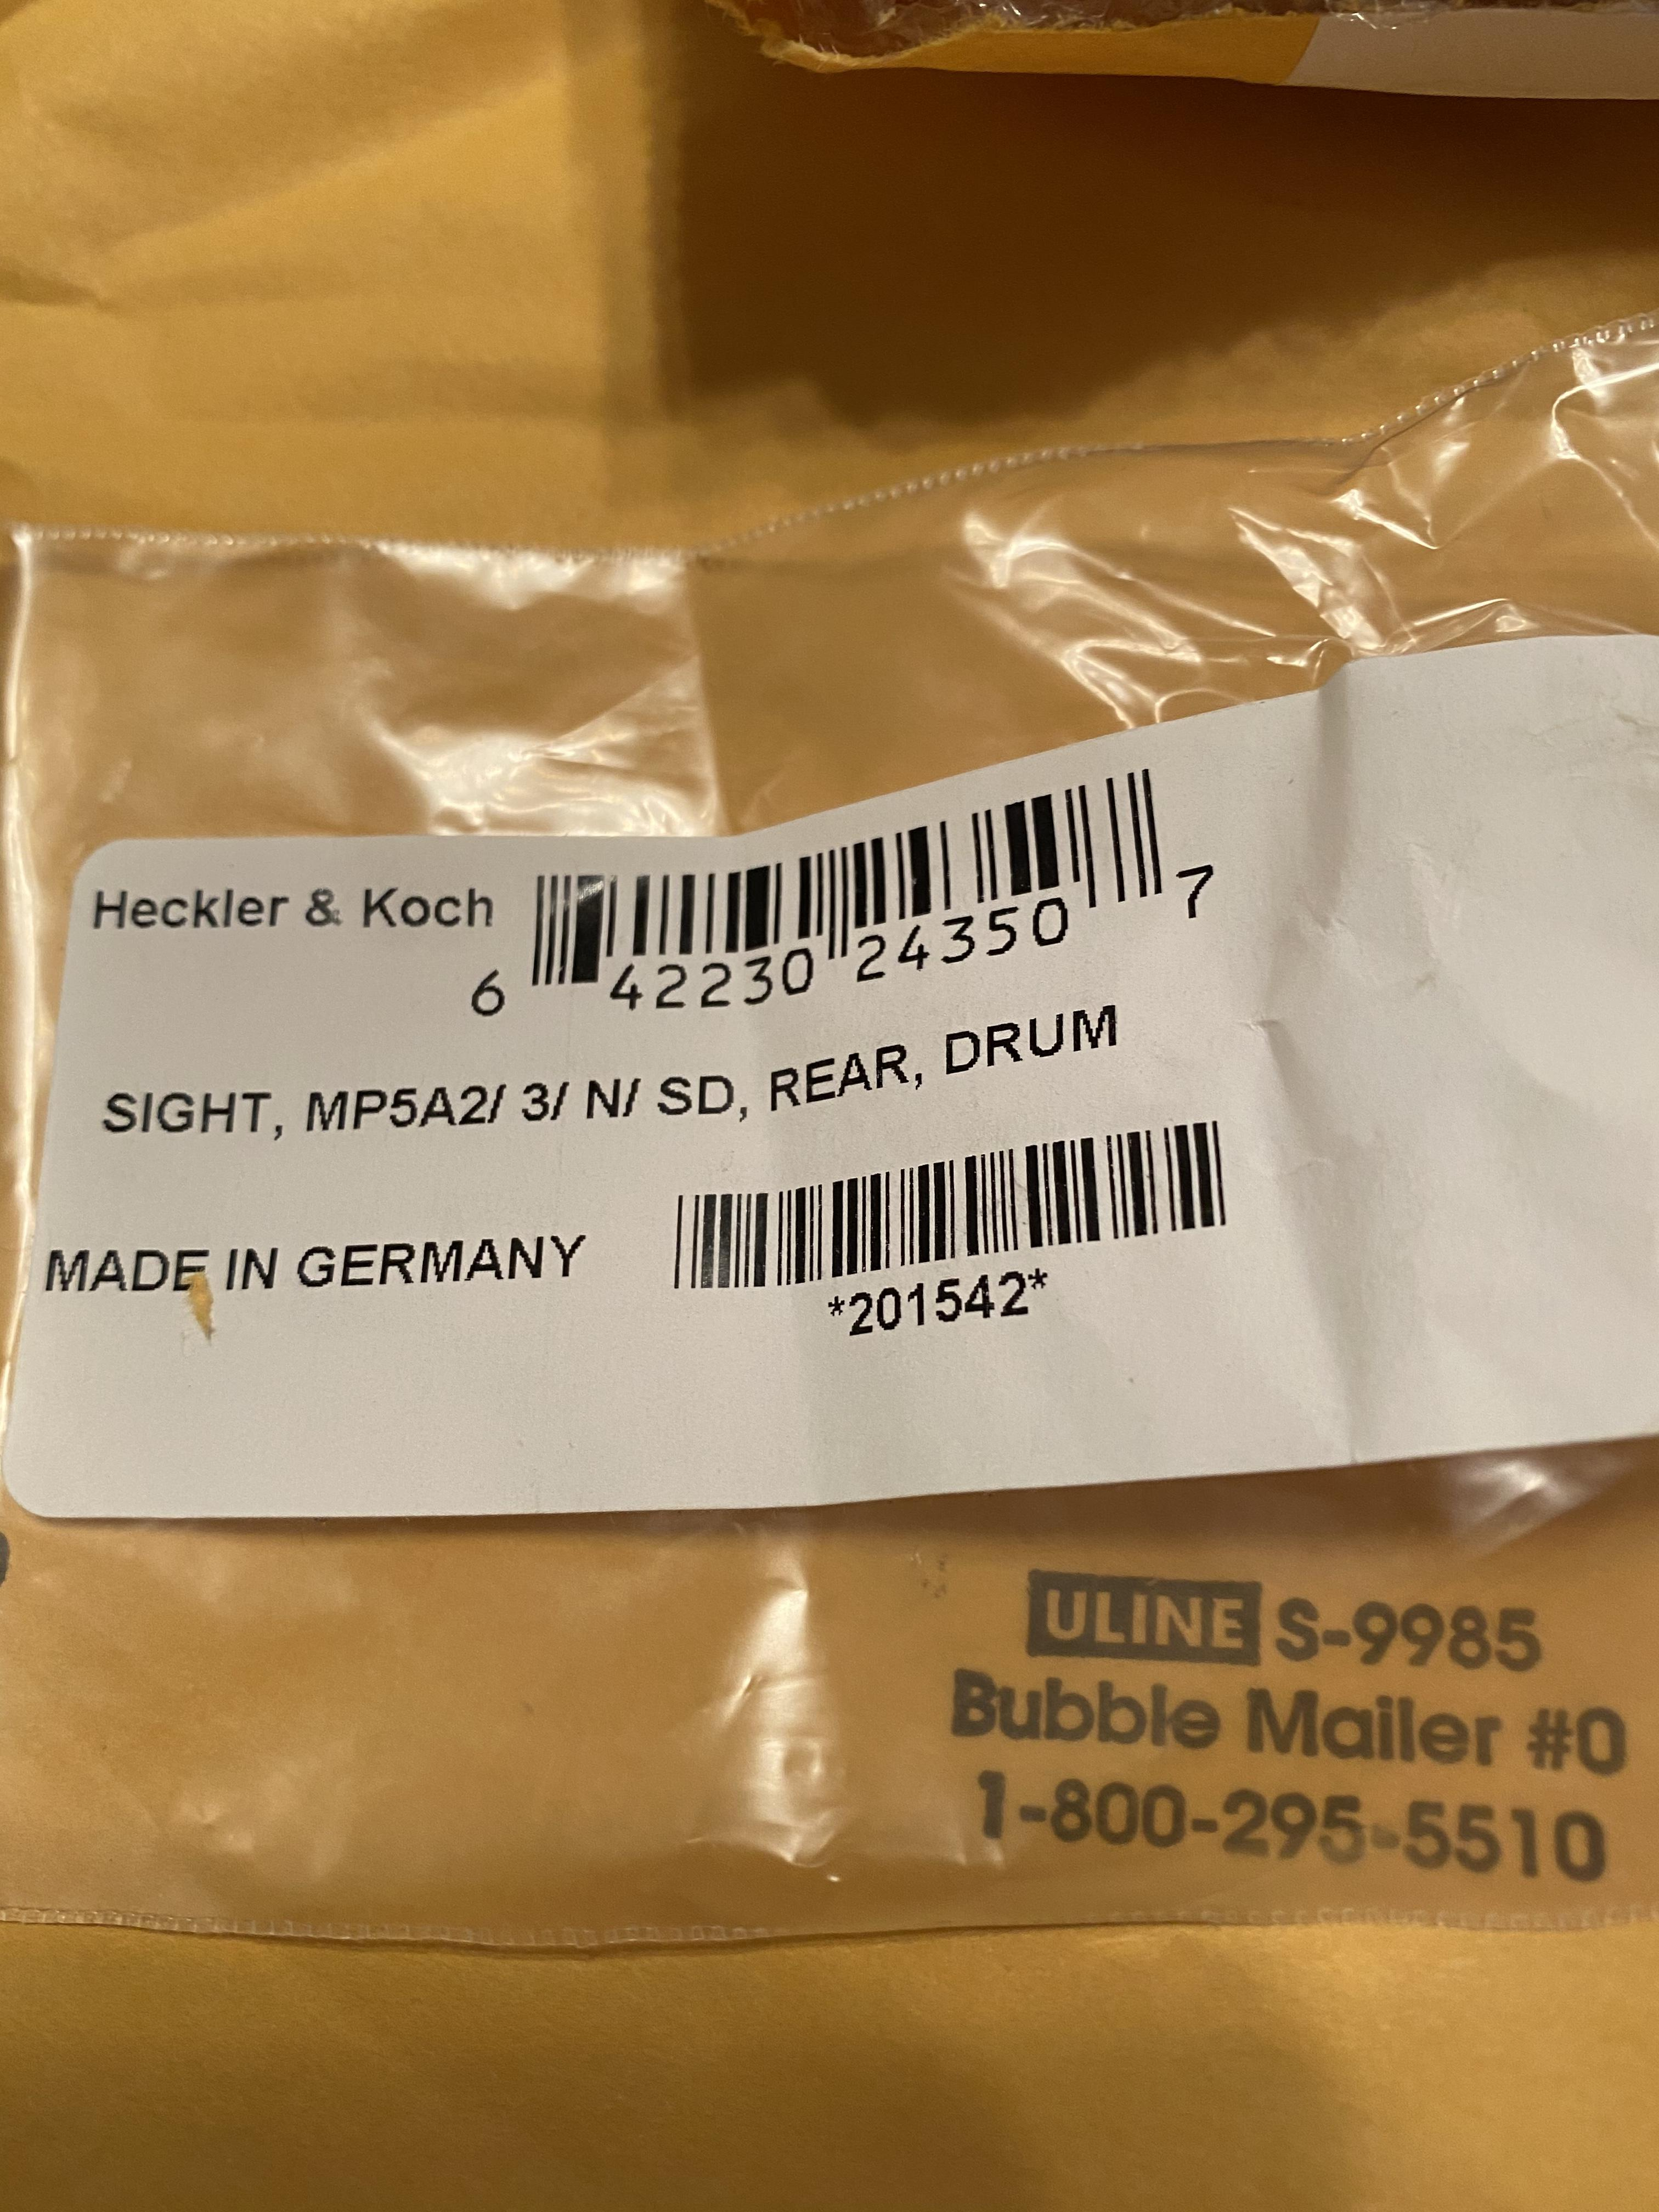 HK Parts Counterfeit German Diopter-26b4a167-86ee-49a0-8c3e-b339c82265e4_1577147919652.jpeg